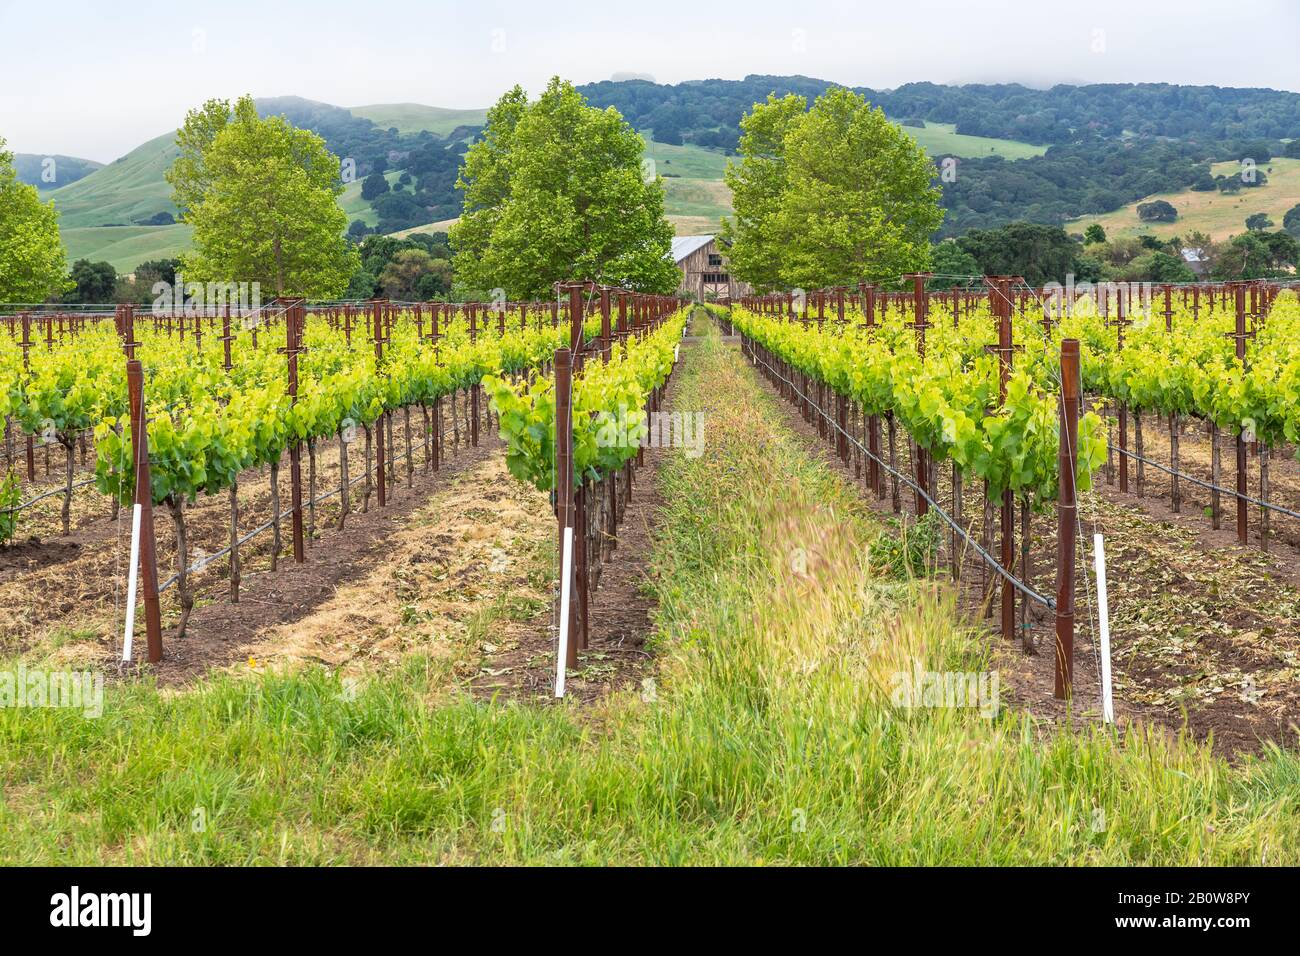 Spring has sprung and the vineyards are looking verdantly lush. A cool atmospheric mist covers the rolling hills and the air feels good. Stock Photo